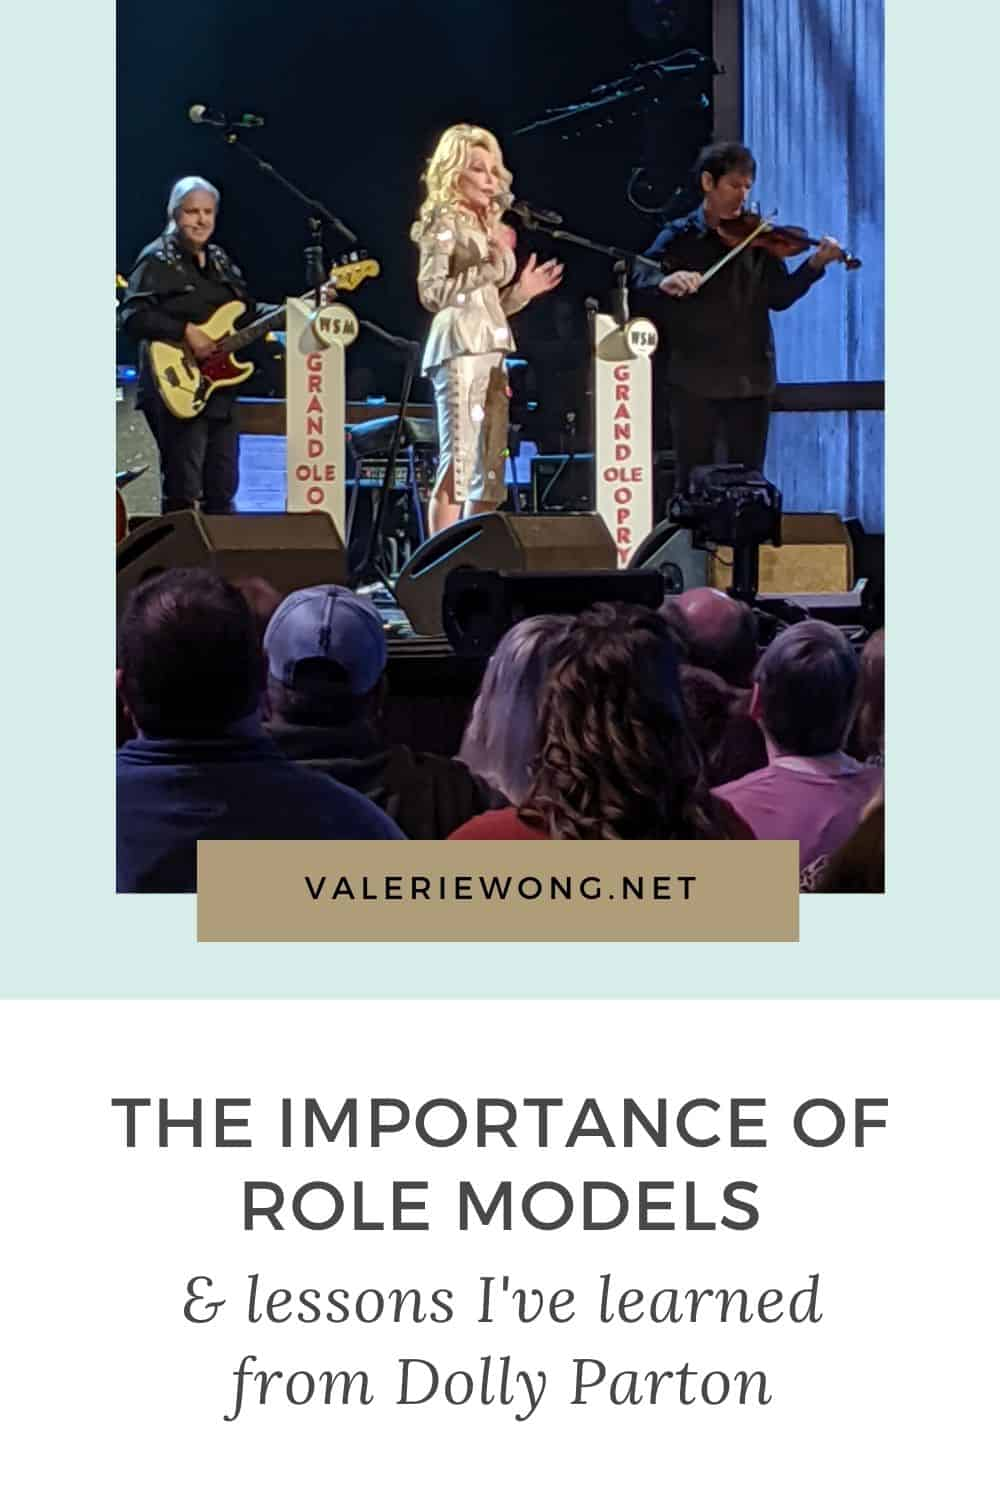 Lessons I've learned from Dolly Parton (& the value of having role models from afar) | Having role models is so vital to our professional & personal development and success. They provide inspiration, motivation, proof that a goal we aspire to can be achieved, and the wisdom gained from their own personal experiences. In this post, I'm sharing what I've learned from one of my role models, Dolly Parton. | Valerie Wong #personaldevelopment #inspiration #rolemodels #personalgrowth #dollyparton via @valeriewonglifecoach